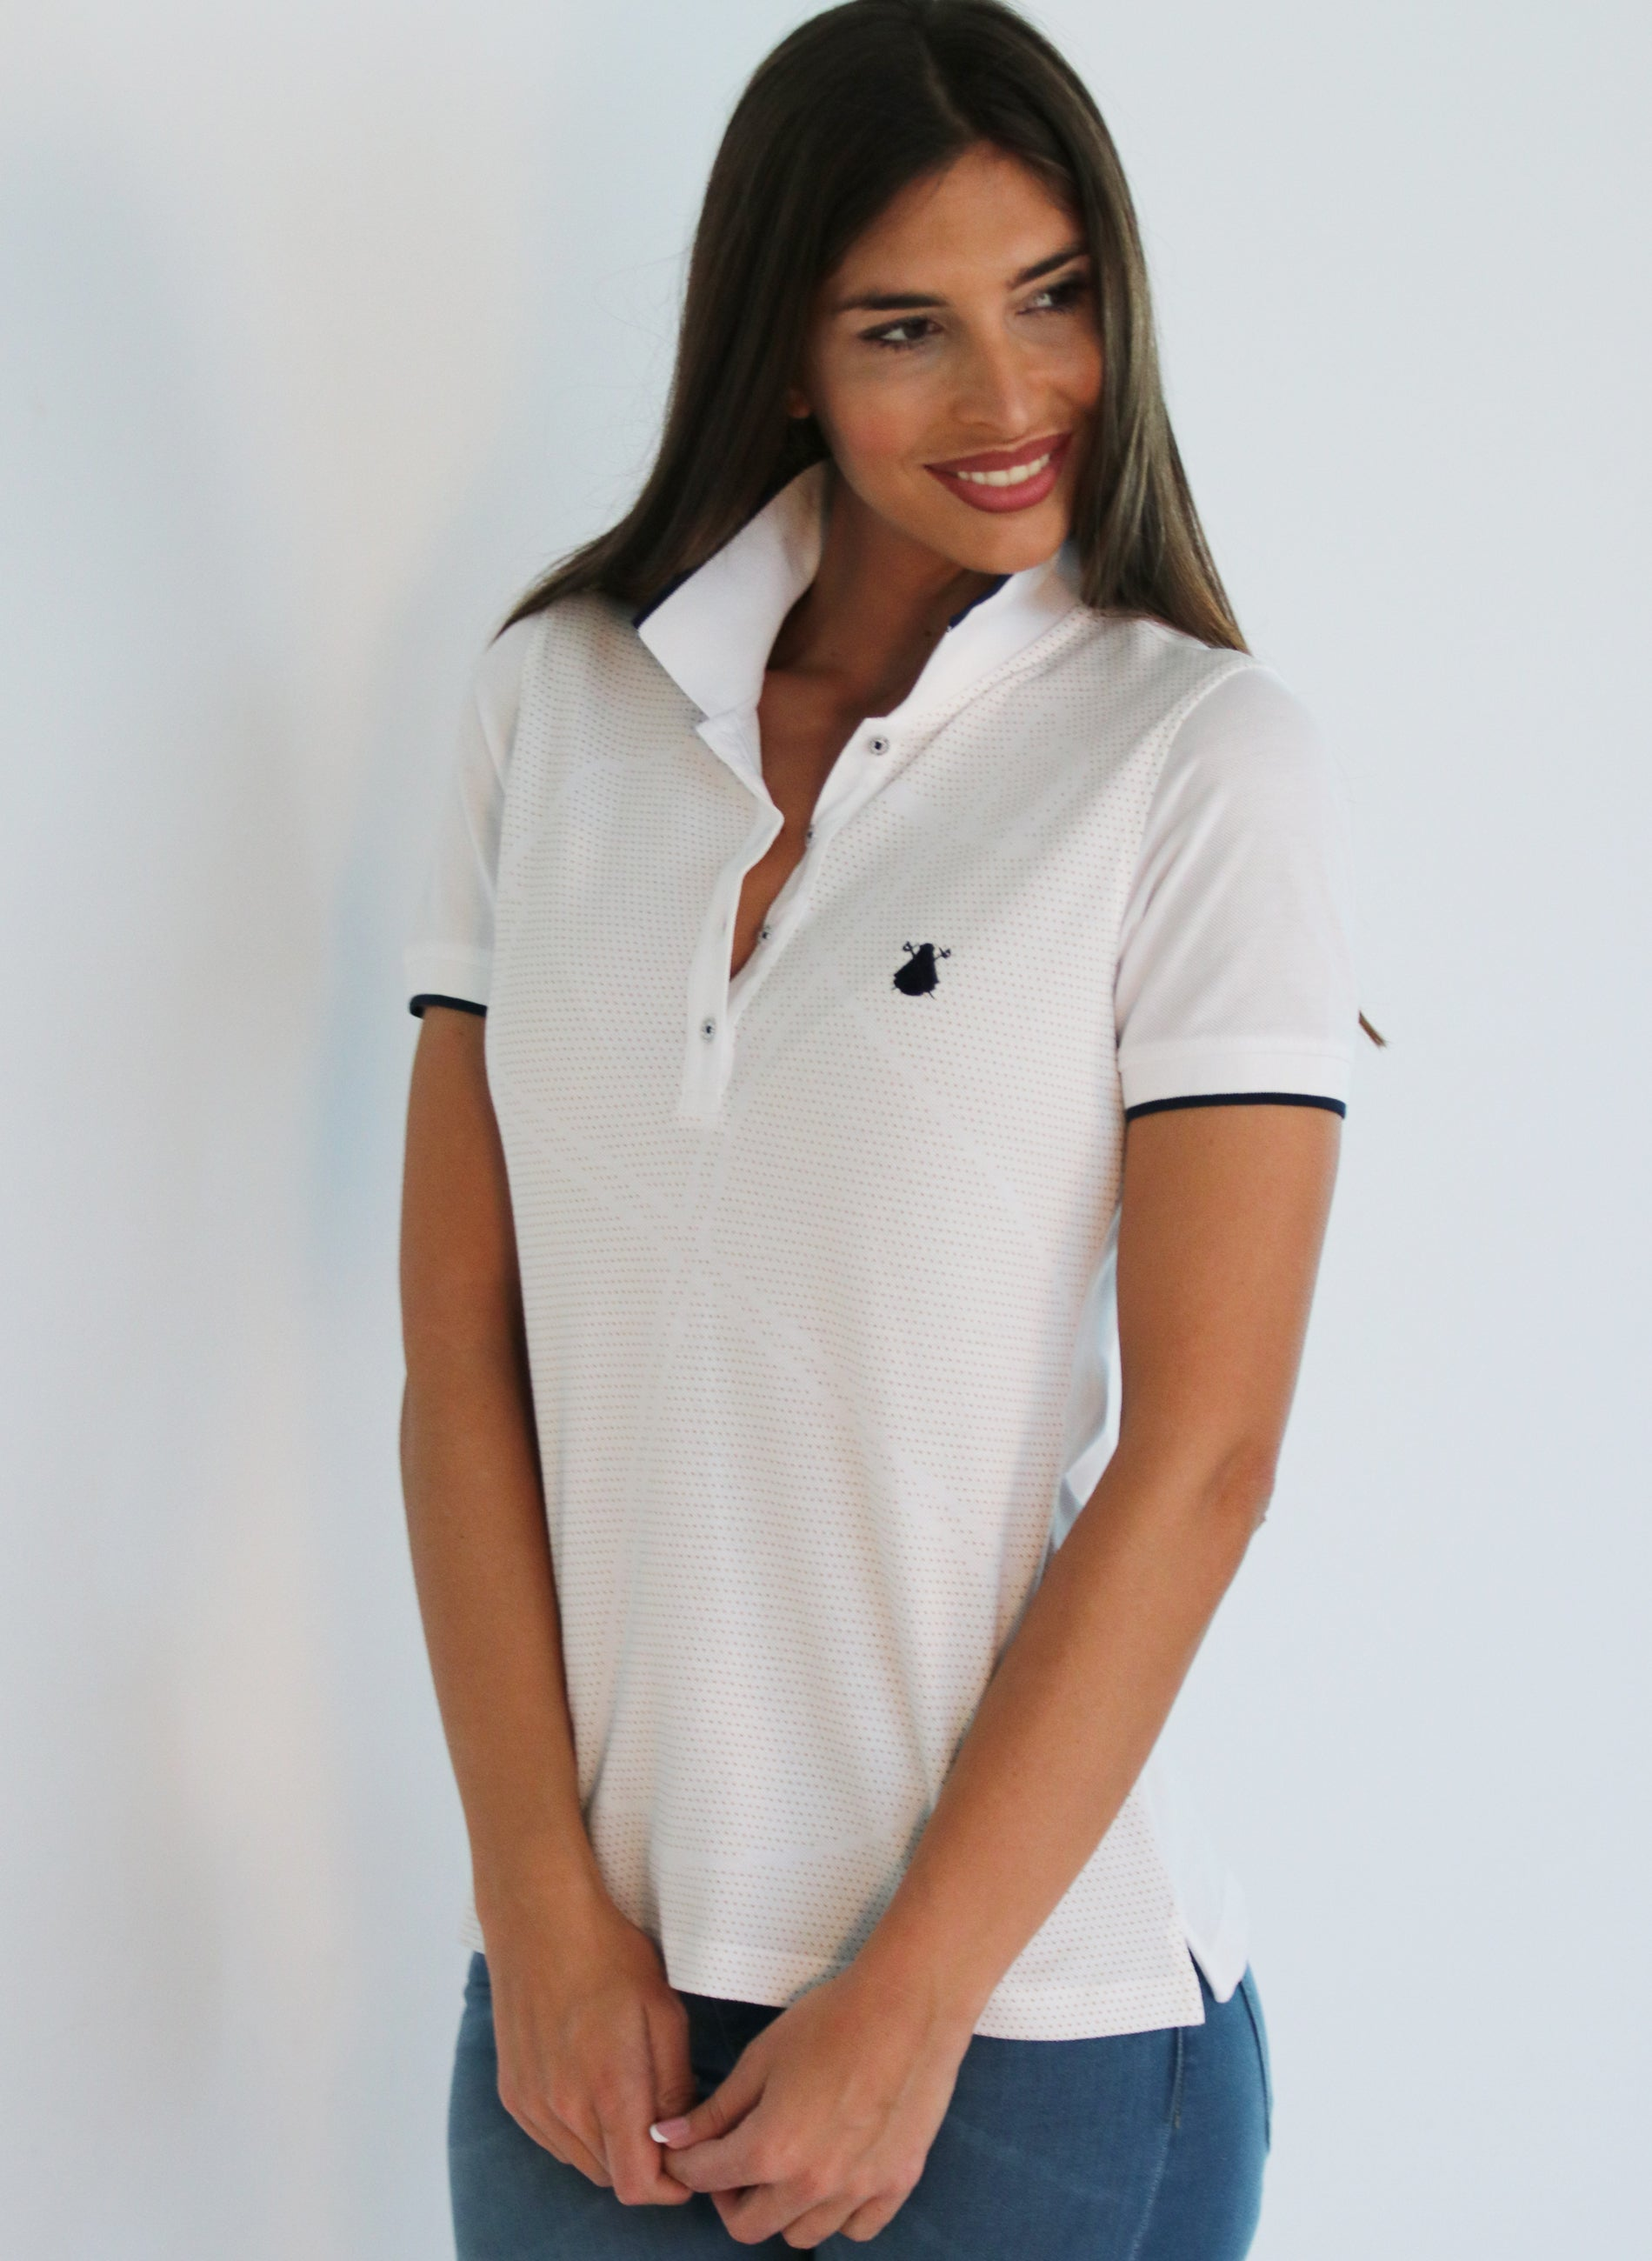 White Polo Logo Polka Dots Woman